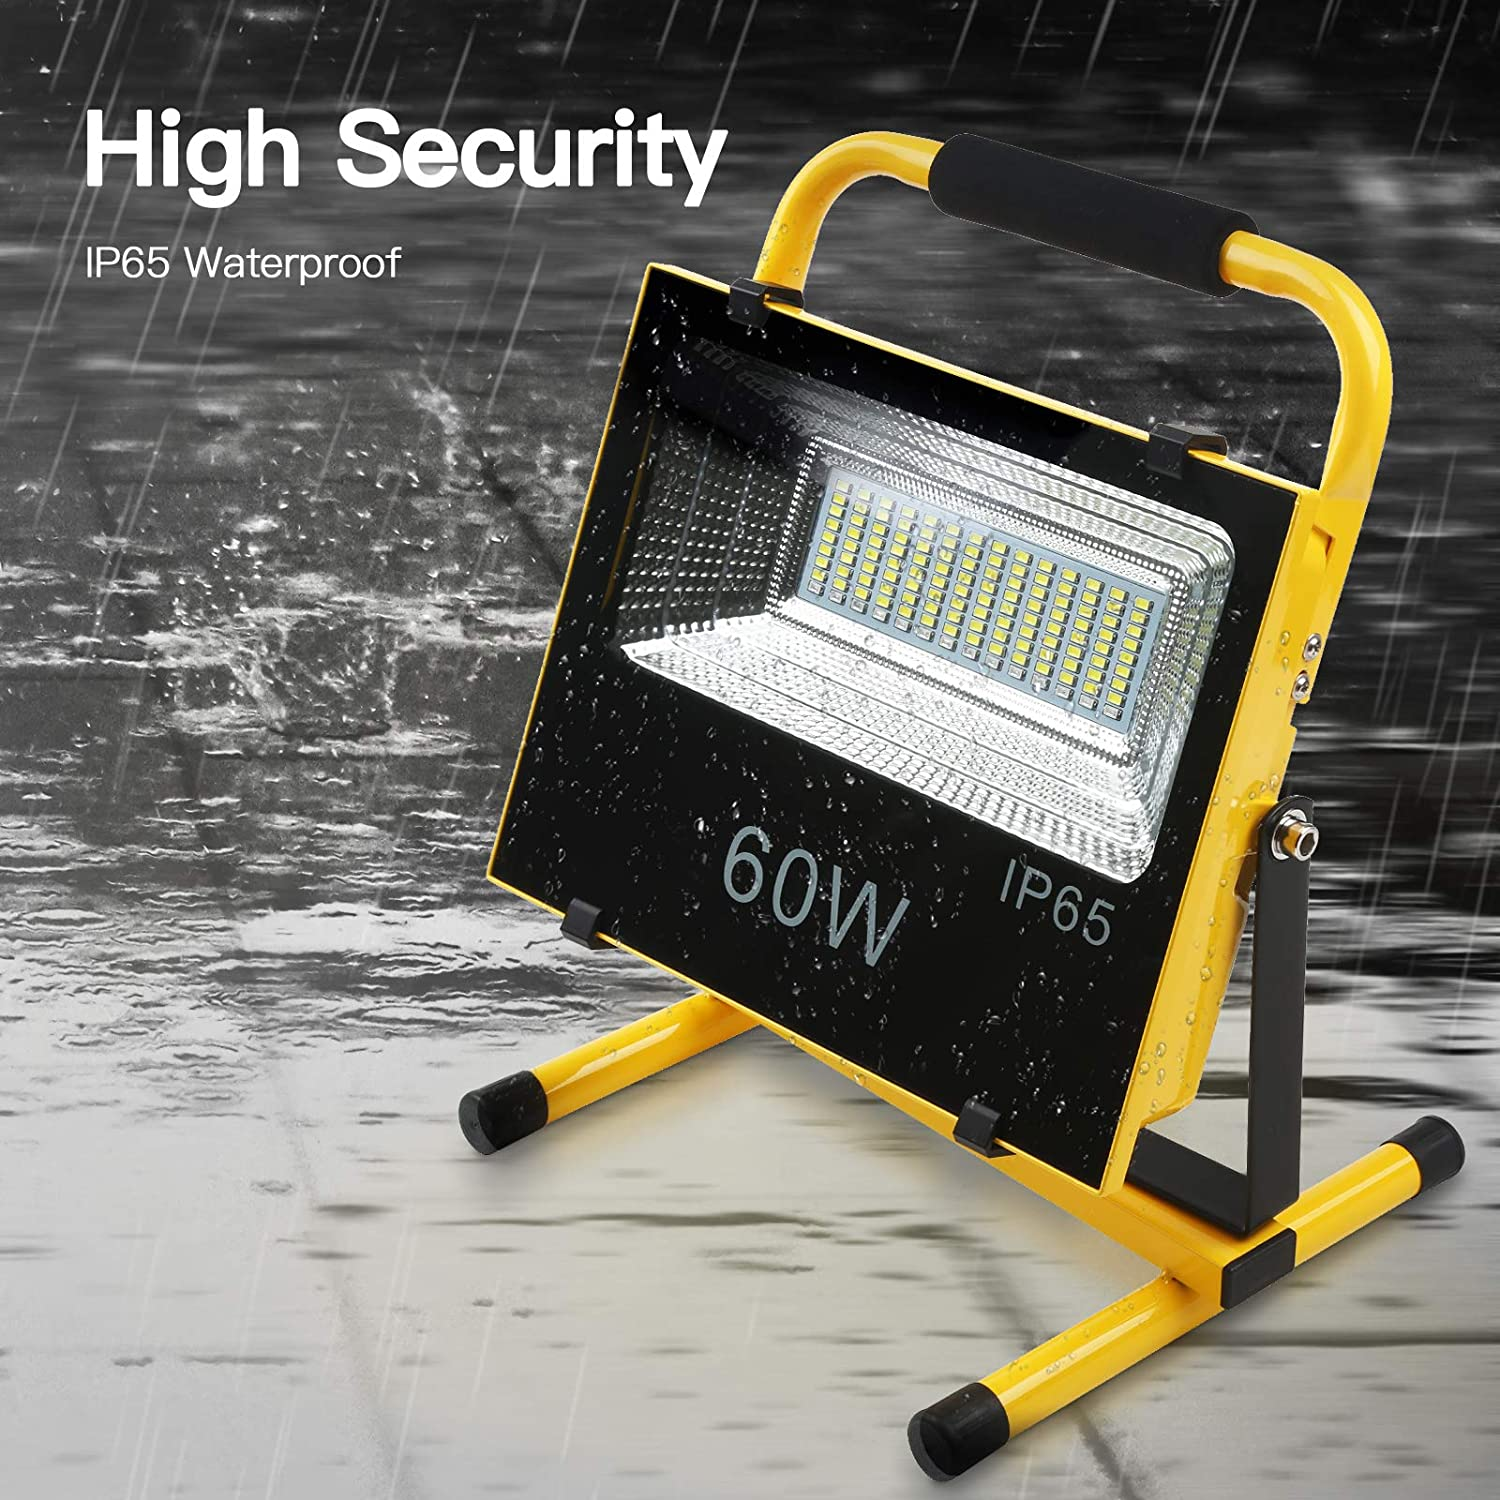 Portable Flood Light Waterproof 120 Degree Astigmatism Hand Lamp Spotlight Light Outdoor Camping Traveling Fishing Security Light 20W Led Work Light Rechargeable